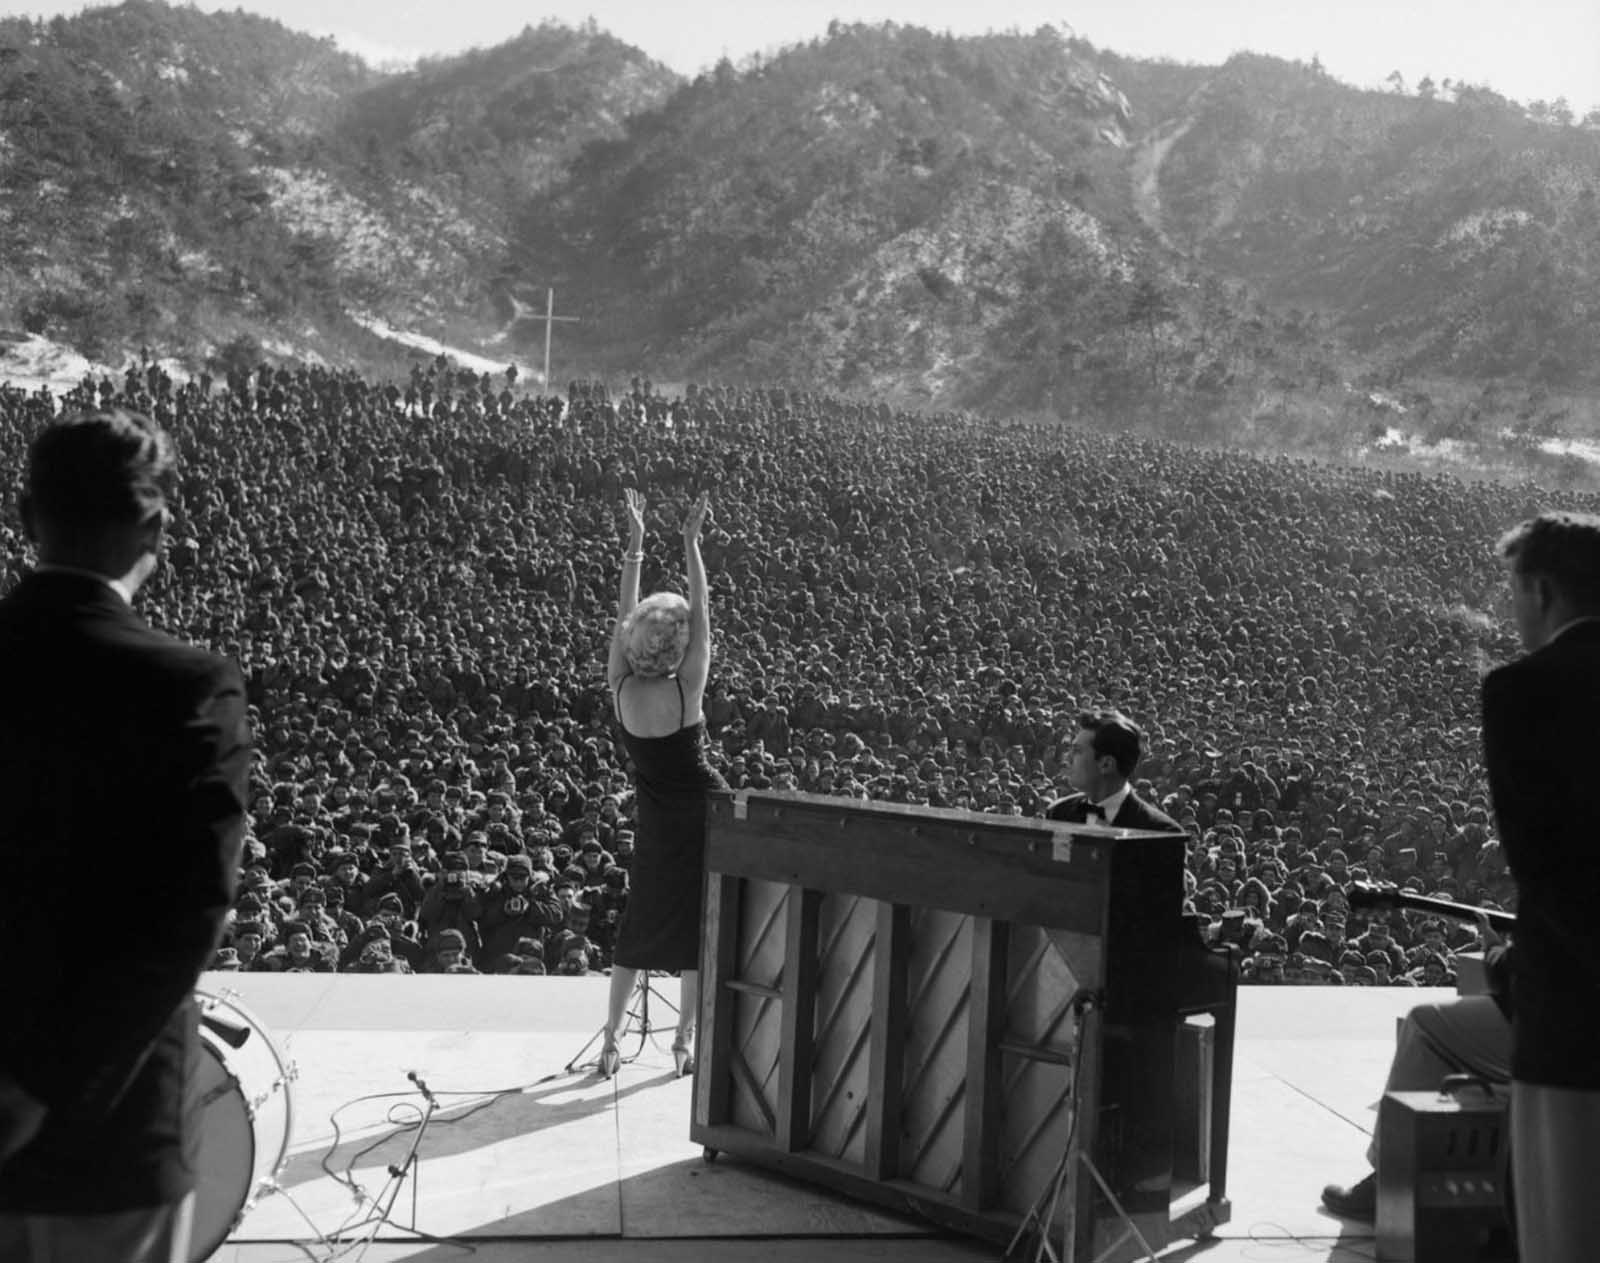 Marilyn Monroe on stage in front of thousands of troops Korea, 1954.